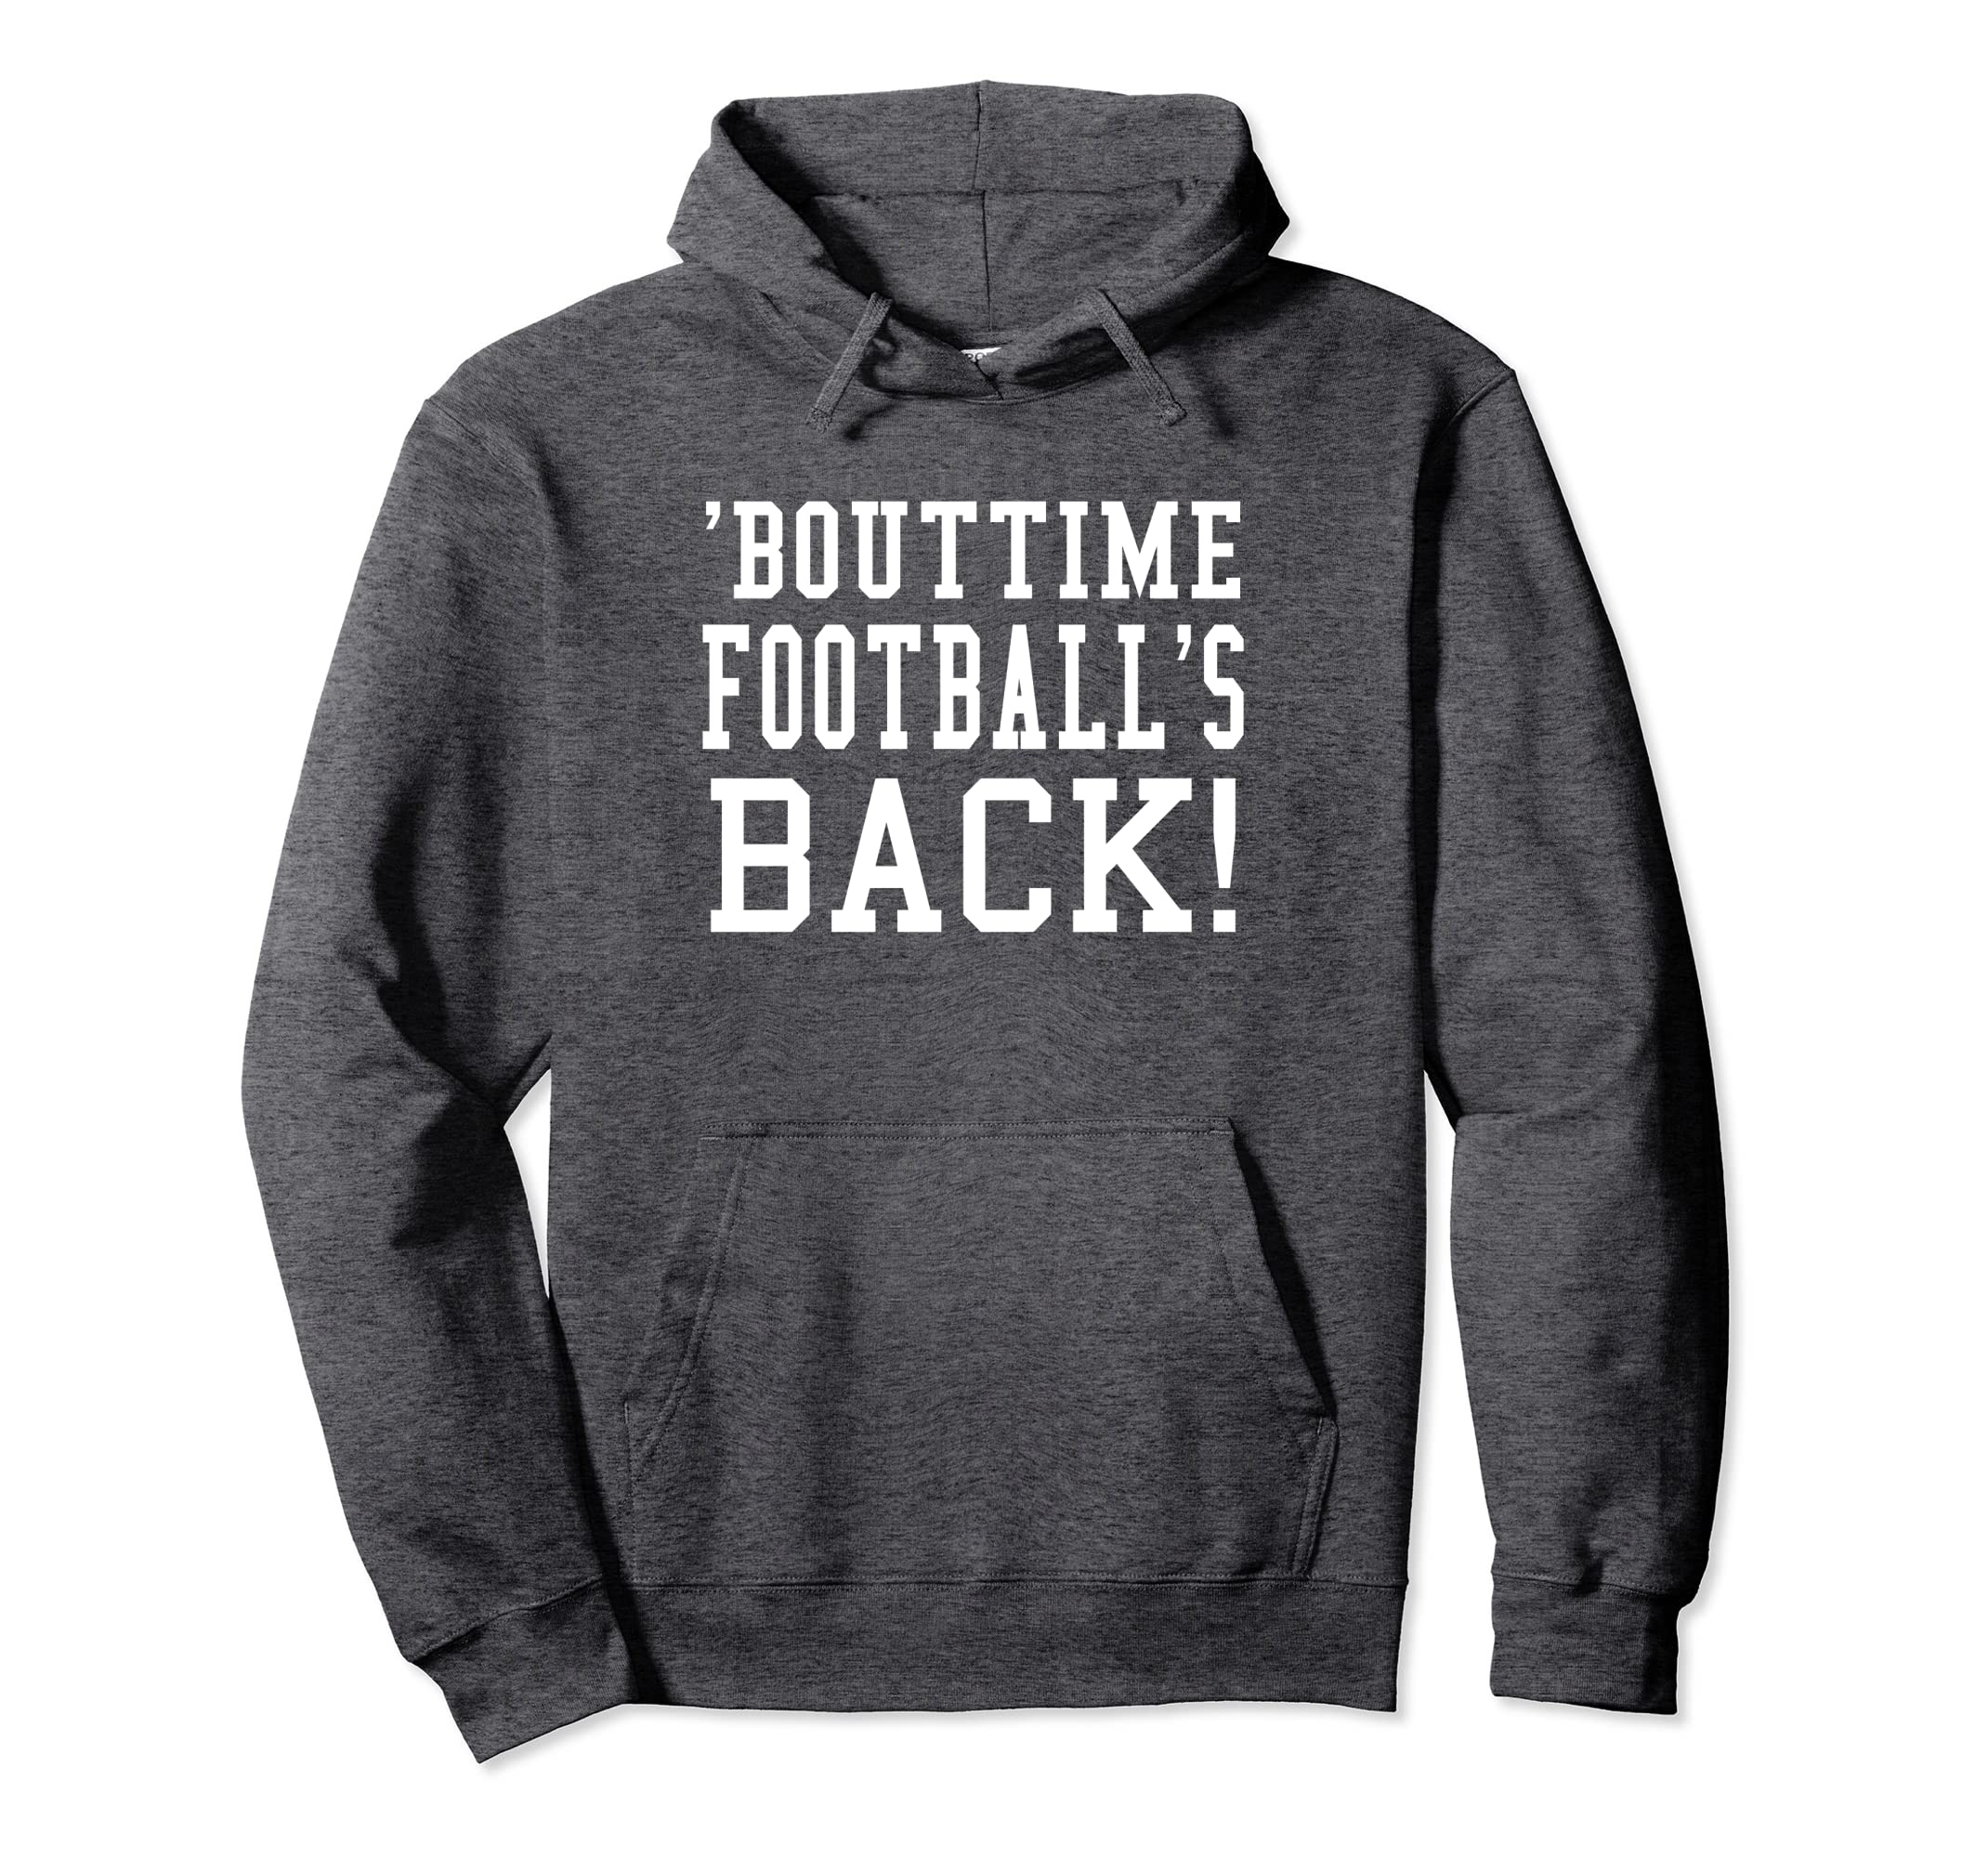 'Bouttime Football's Back Sports Funny Pullover Hoodie